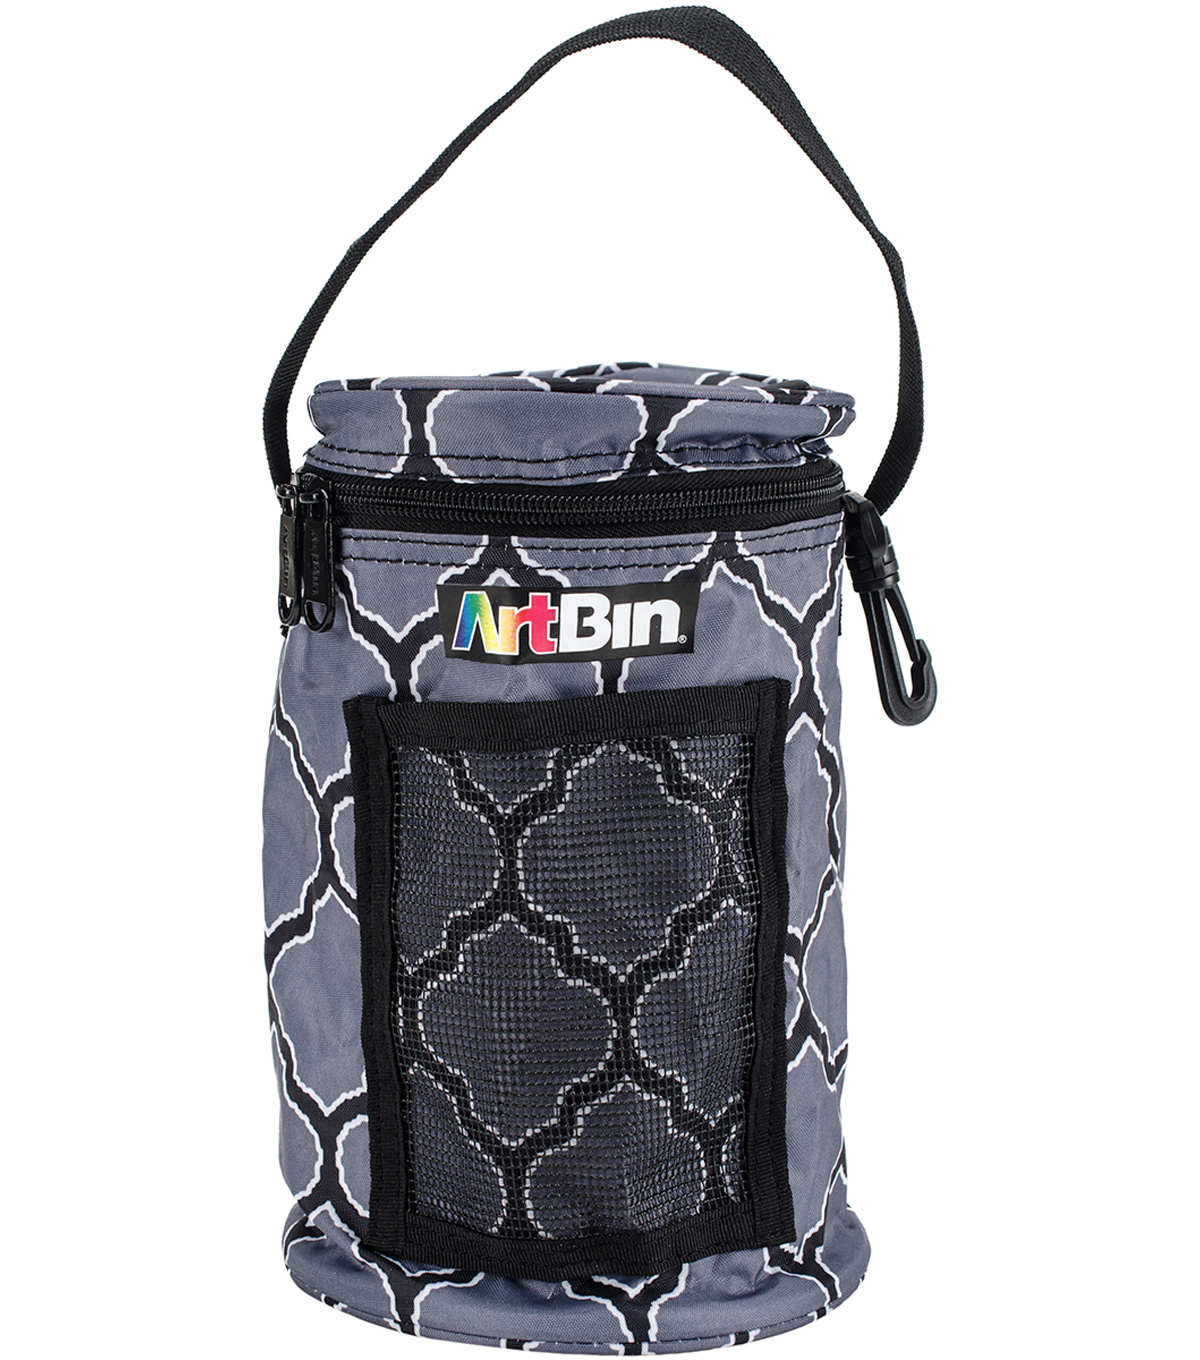 ArtBin Mini Yarn Drum 5.7\u0022X9.5\u0022-Black & Gray